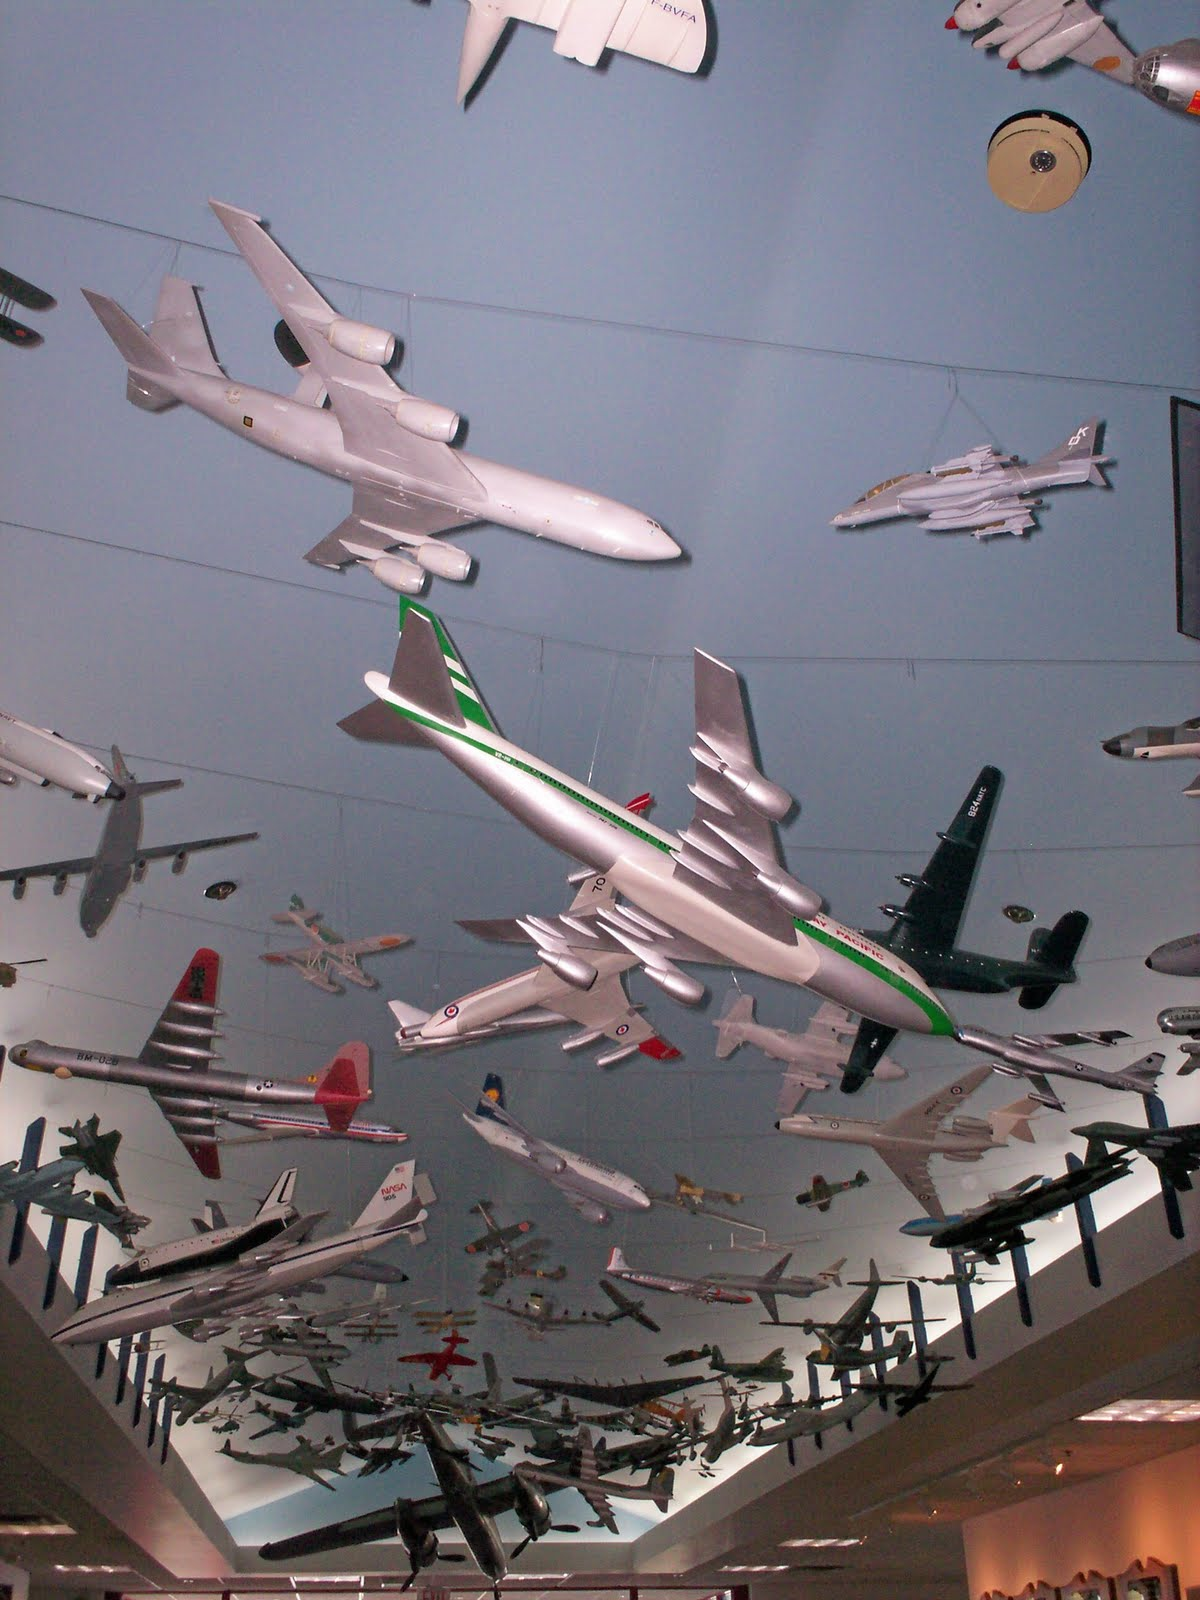 Ne Air Museum Toy Models From Ceiling 410